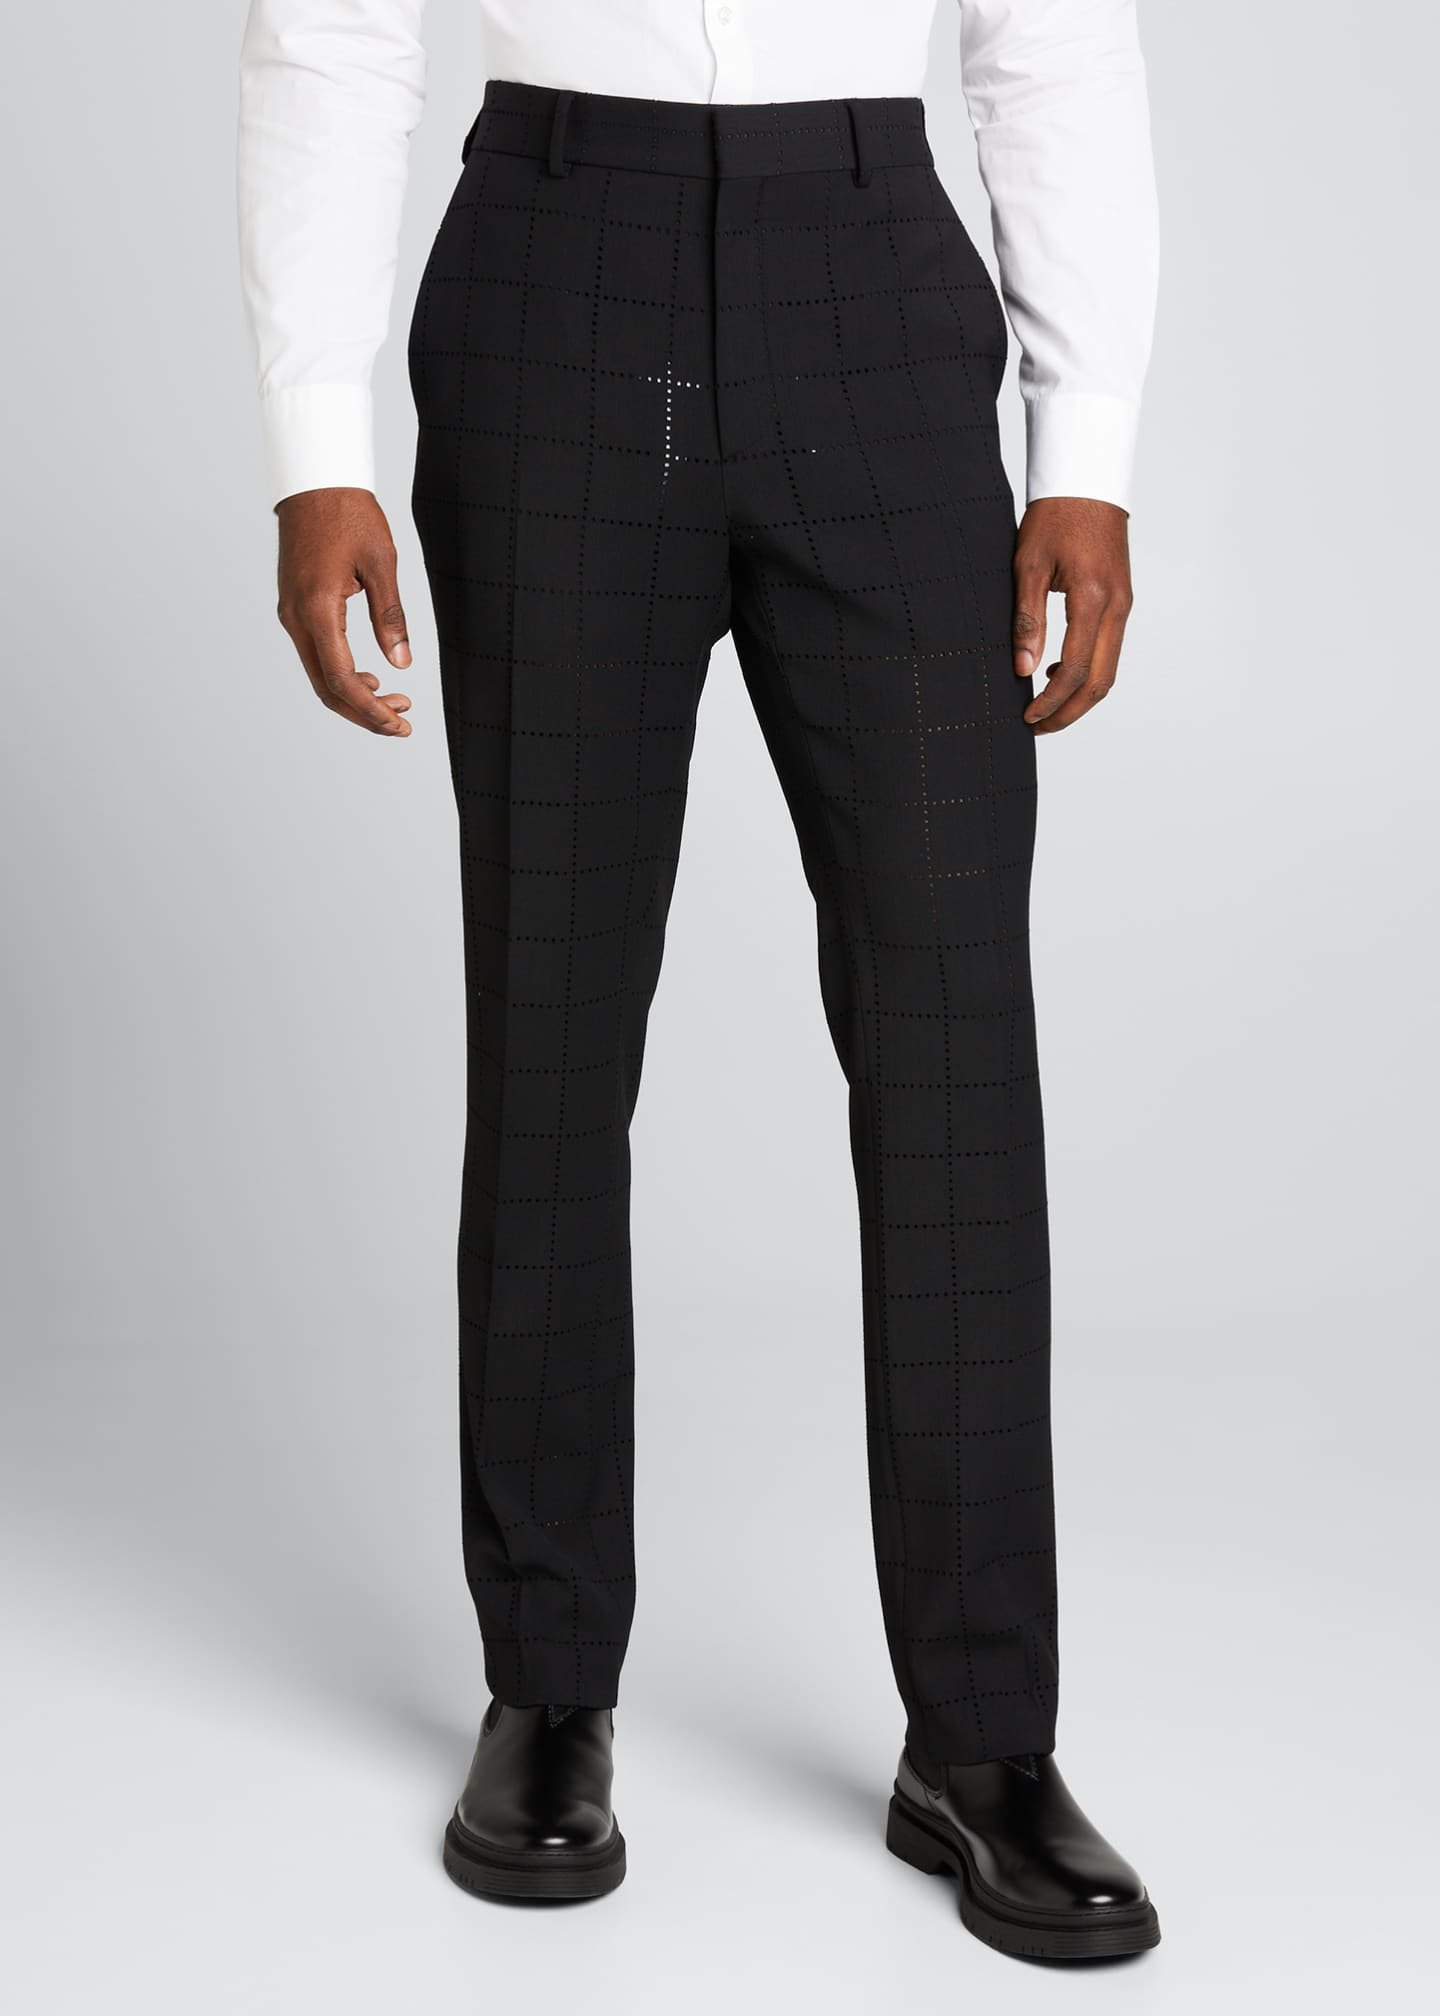 Image 3 of 5: Men's Punched Squares Dress Pants